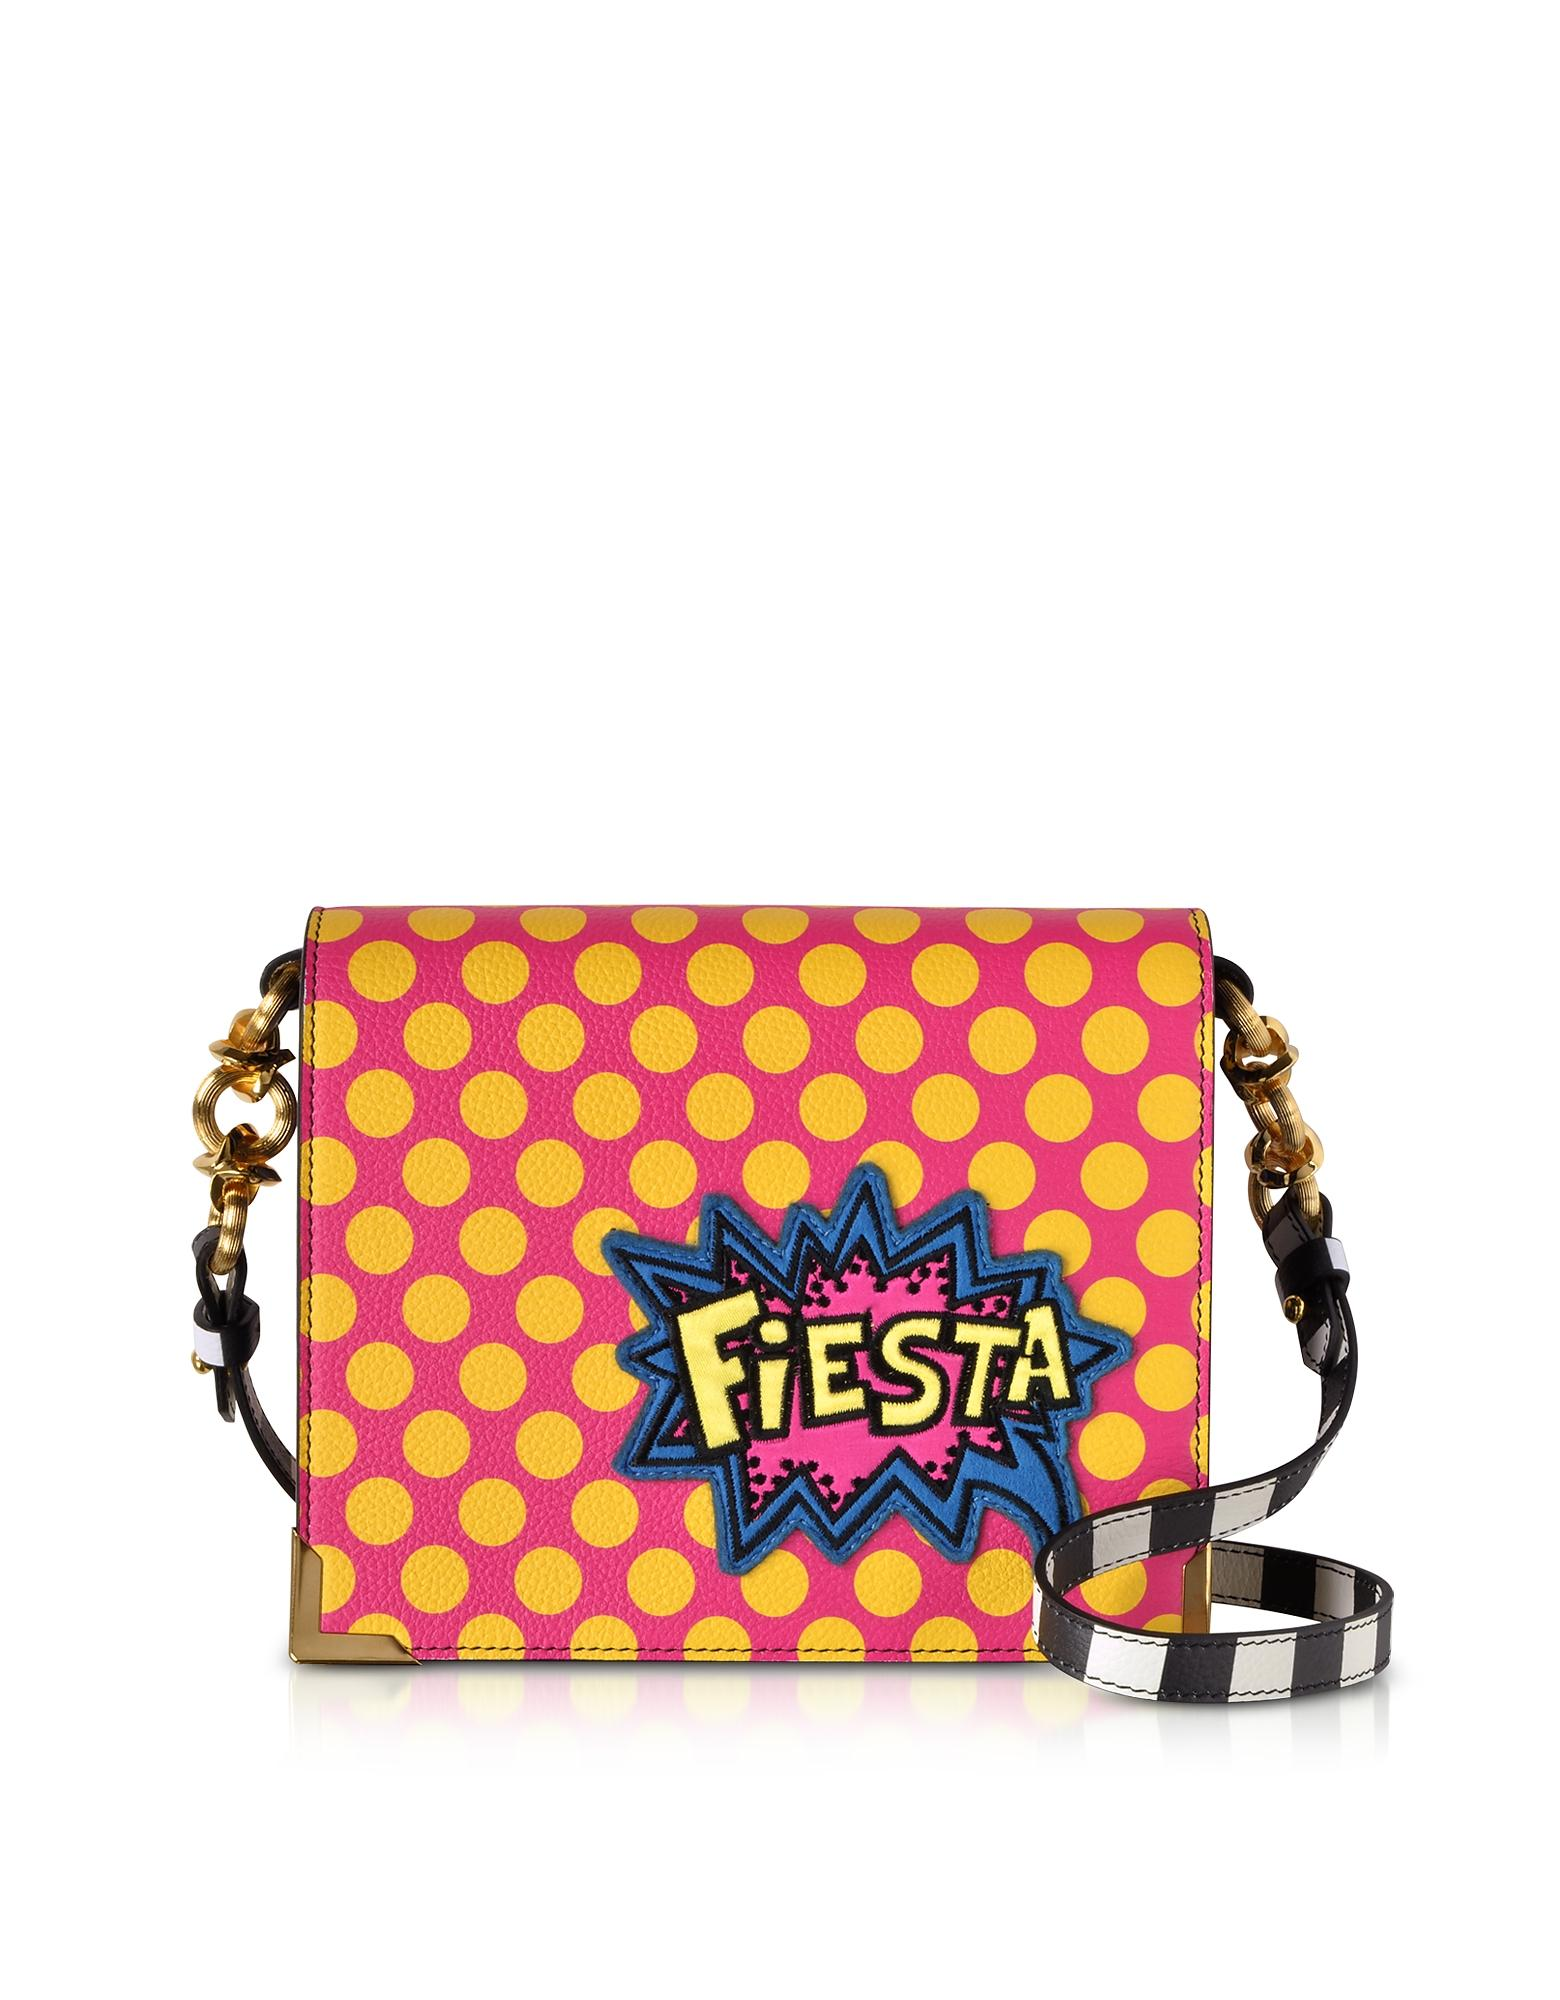 Alessandro Enriquez Hera Pop Fiesta Leather Shoulder Bag In Red